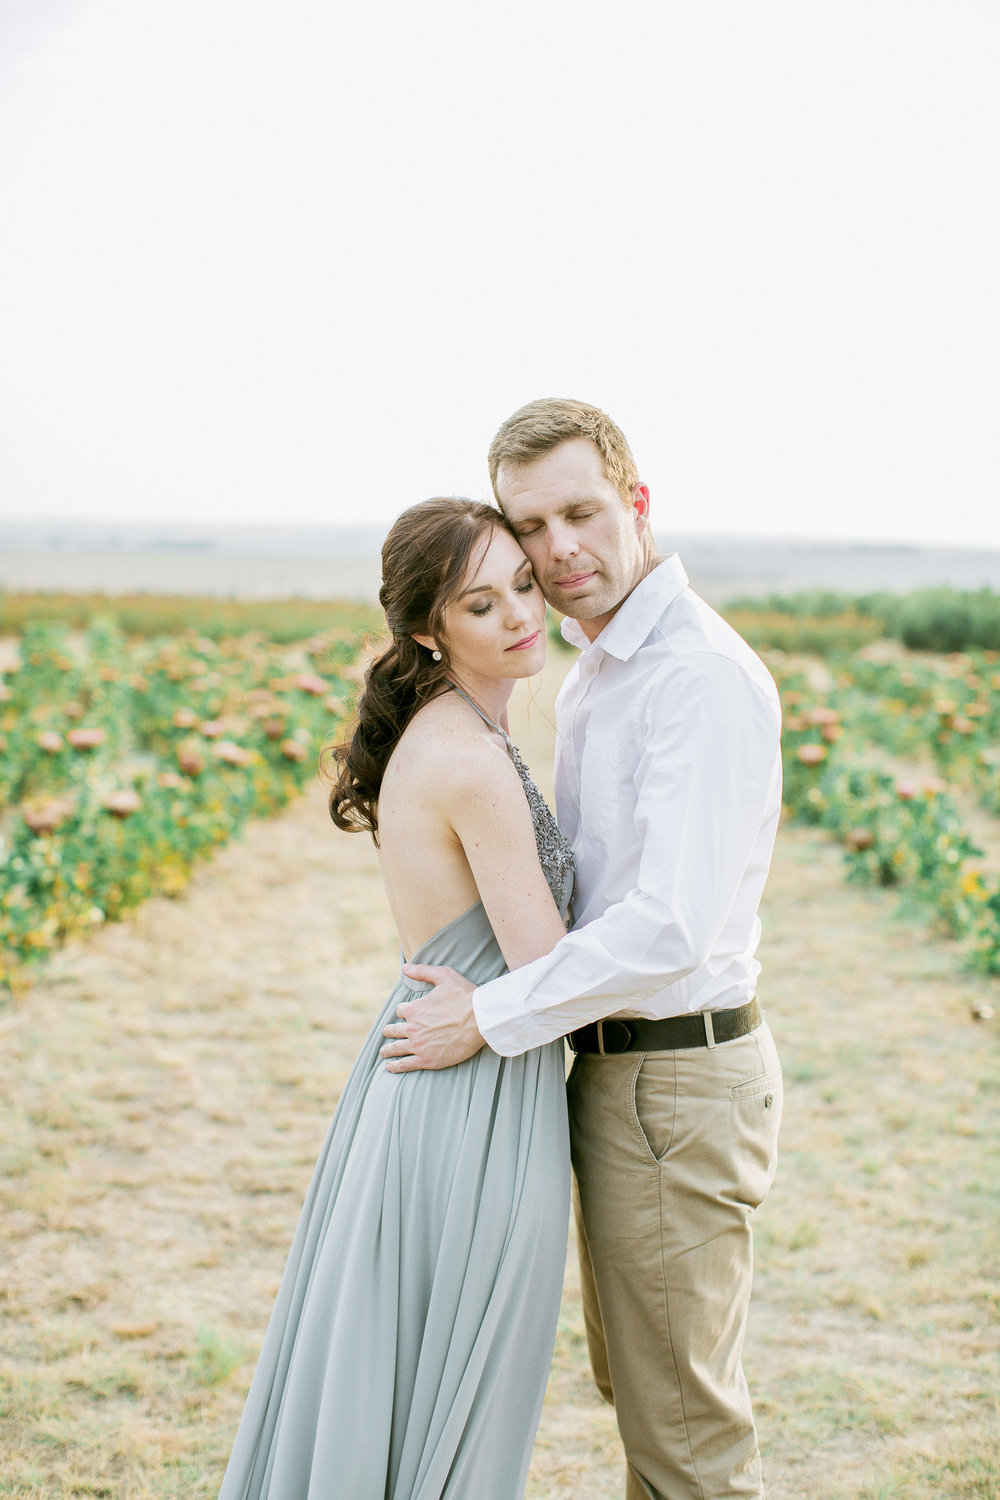 South africa wedding photographer clareece smit photography66.jpg